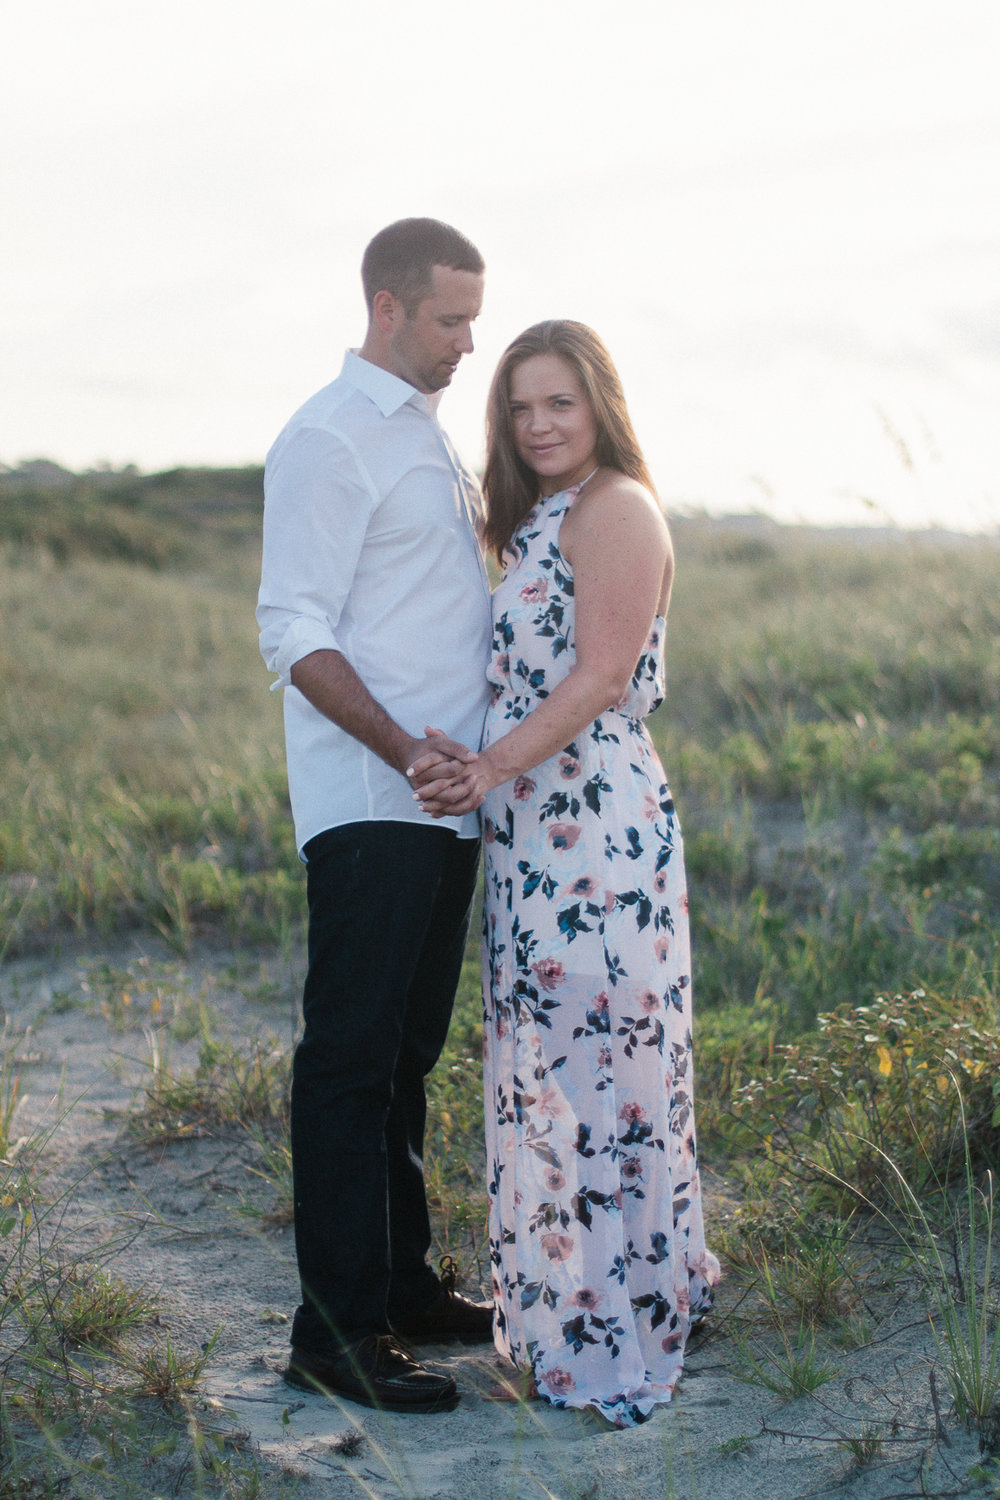 Engaged couple at Kiawah Island Beach Resort, Kiawah Island South Carolina by Danielle Gallo Photography